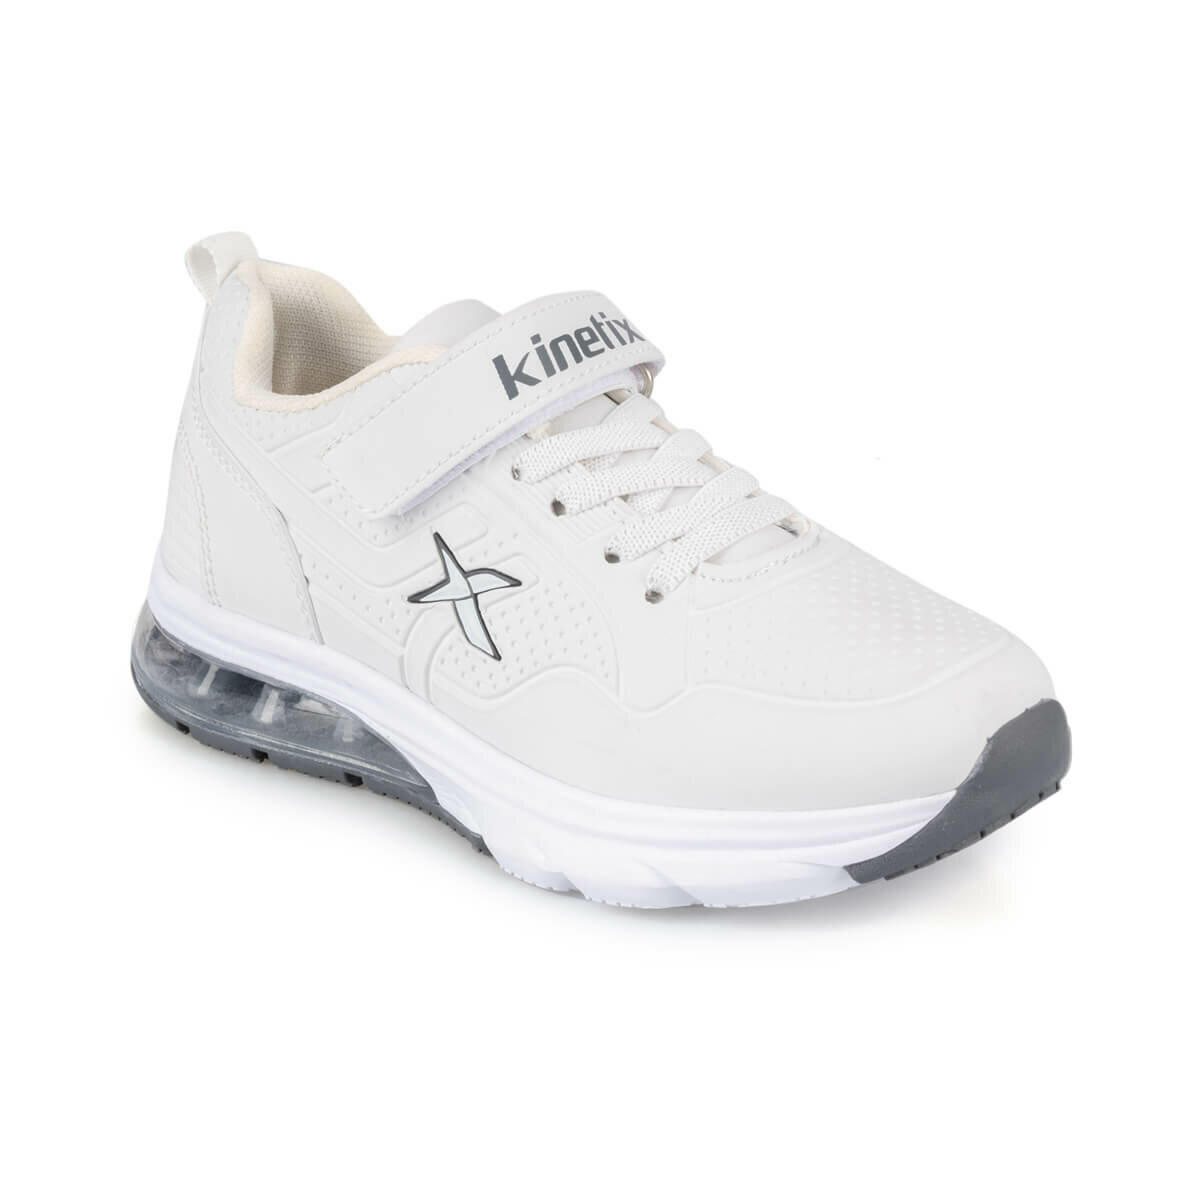 FLO ASPEN J 9PR White Male Child Running Shoes KINETIX